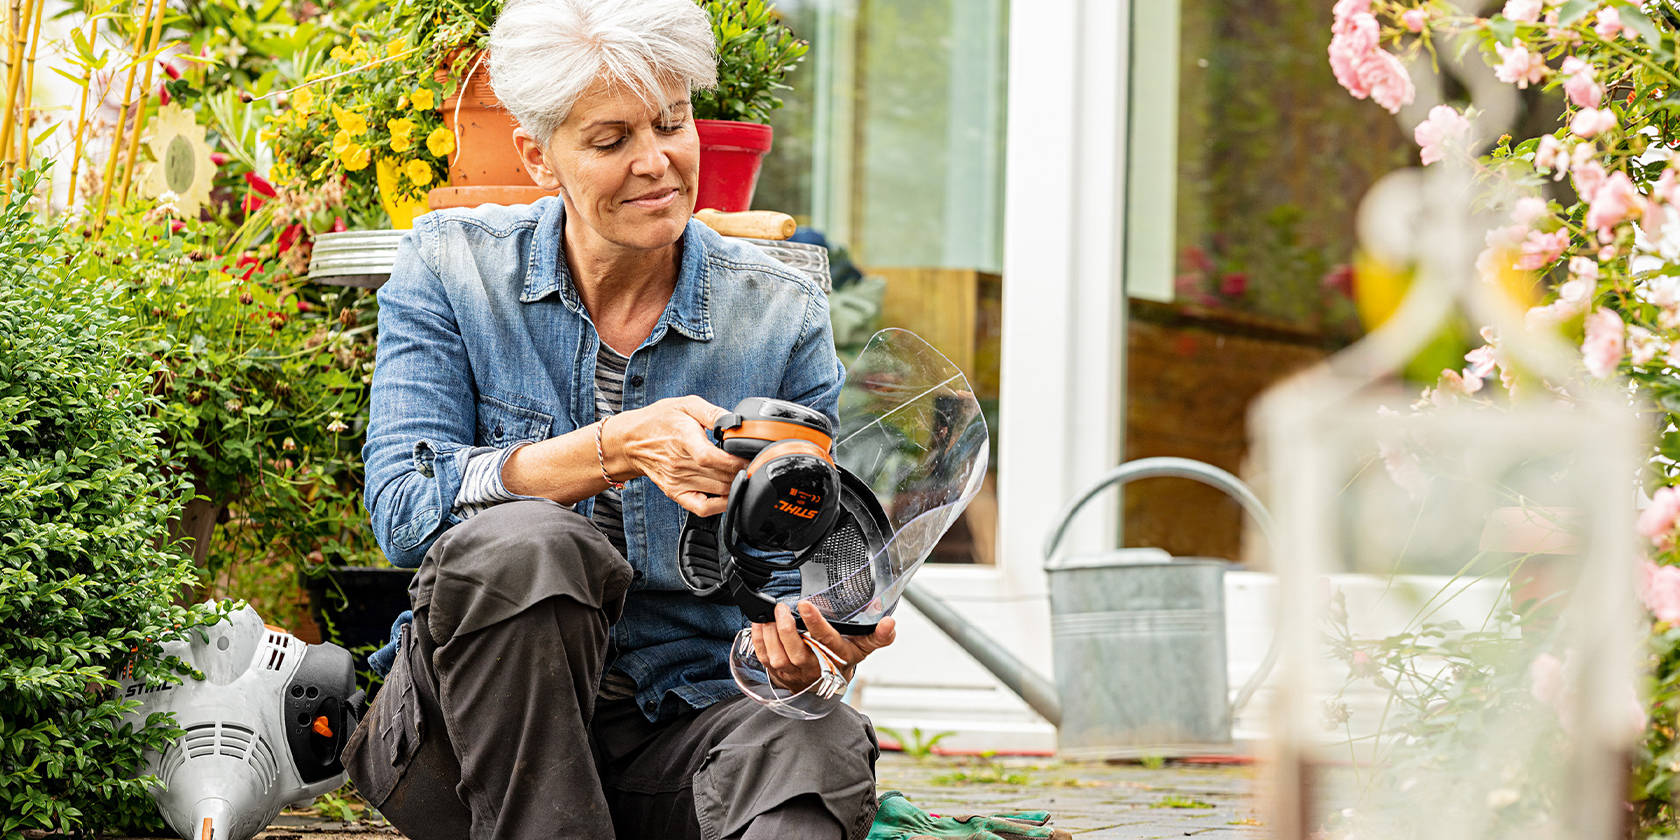 Woman sitting in front of a house with face/hearing protection in her hand, next to her is a STIHL FS 56 R gasoline driven brushcutter